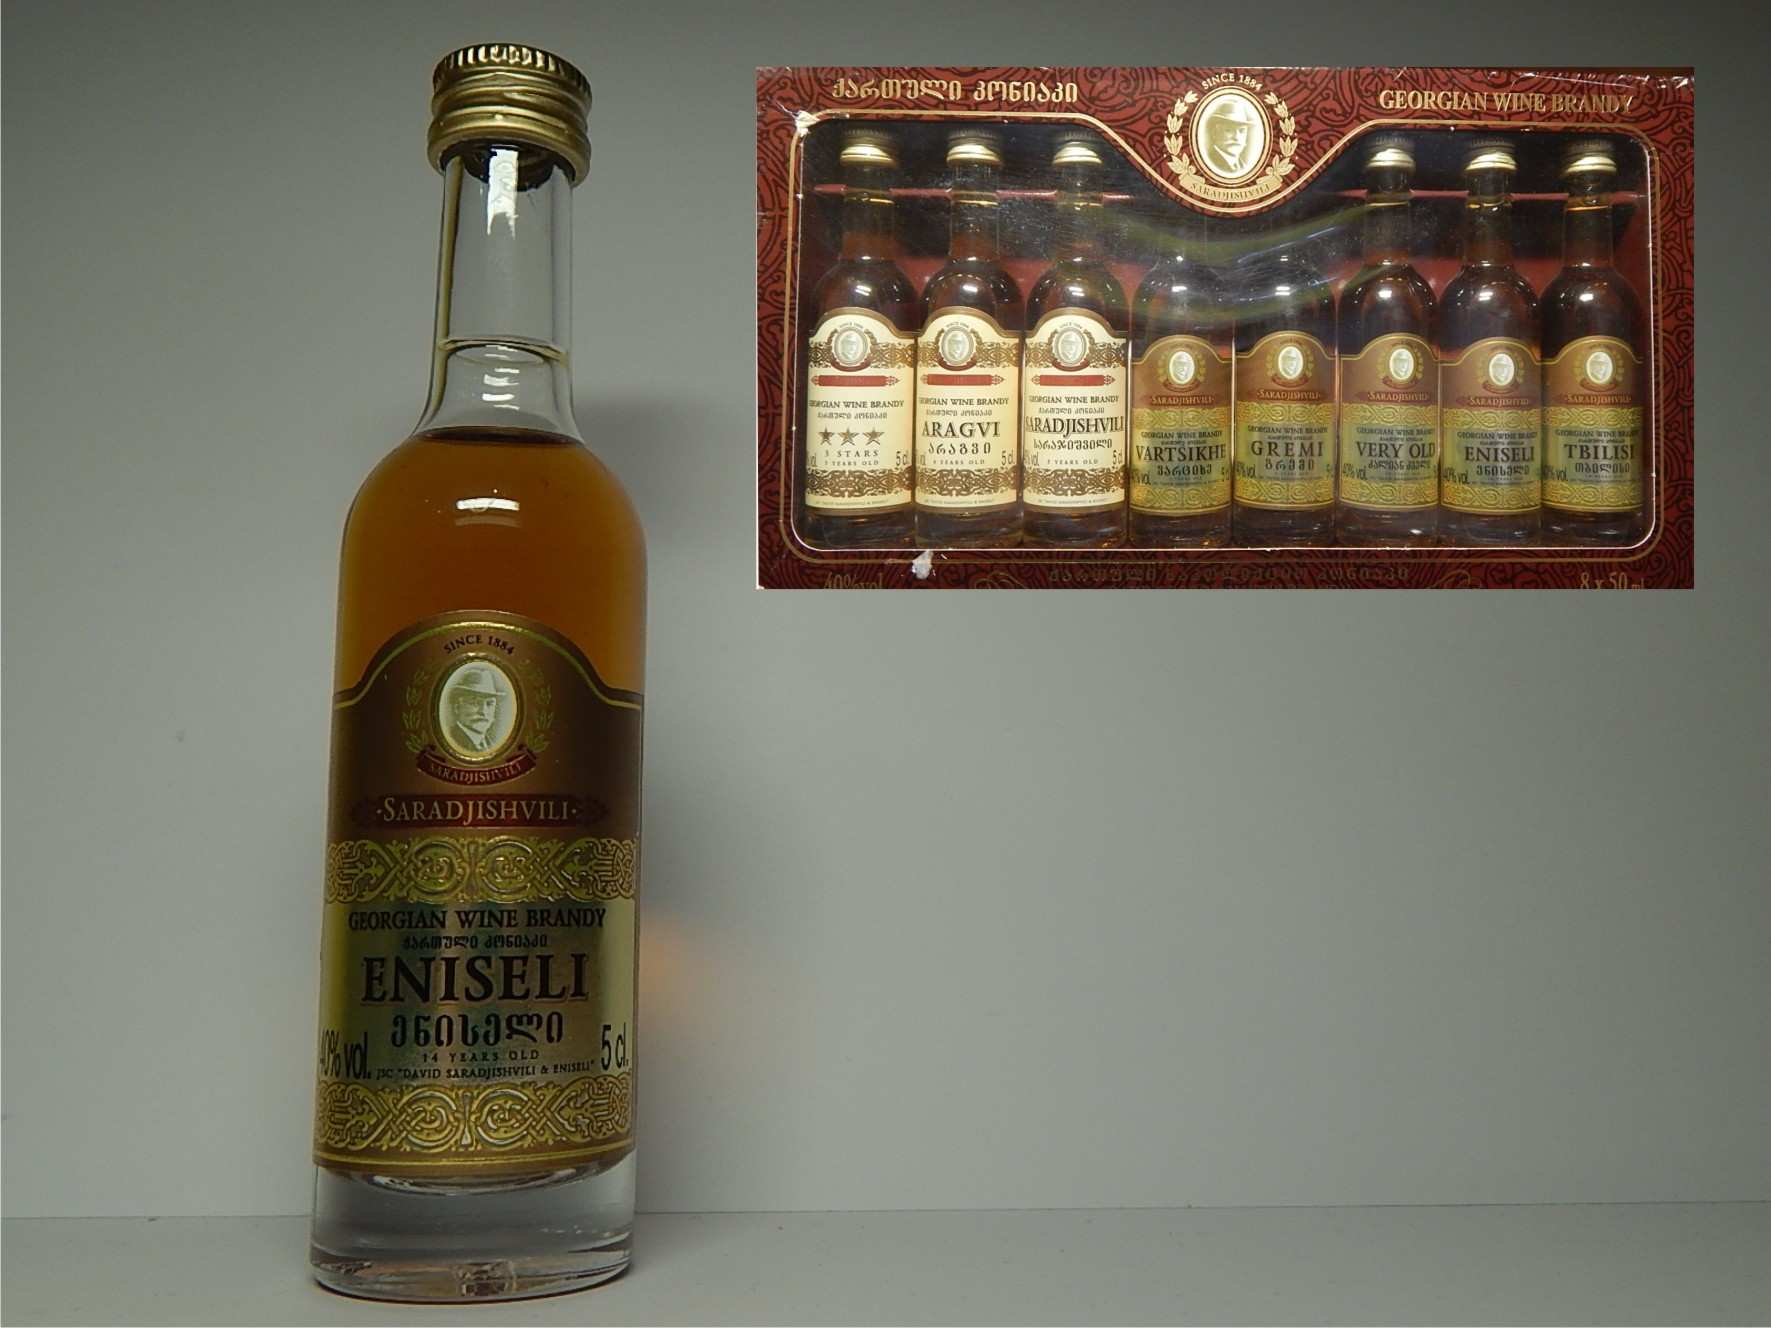 SARADJISHVILI ENISELI 14yo Georgian Wine Brandy